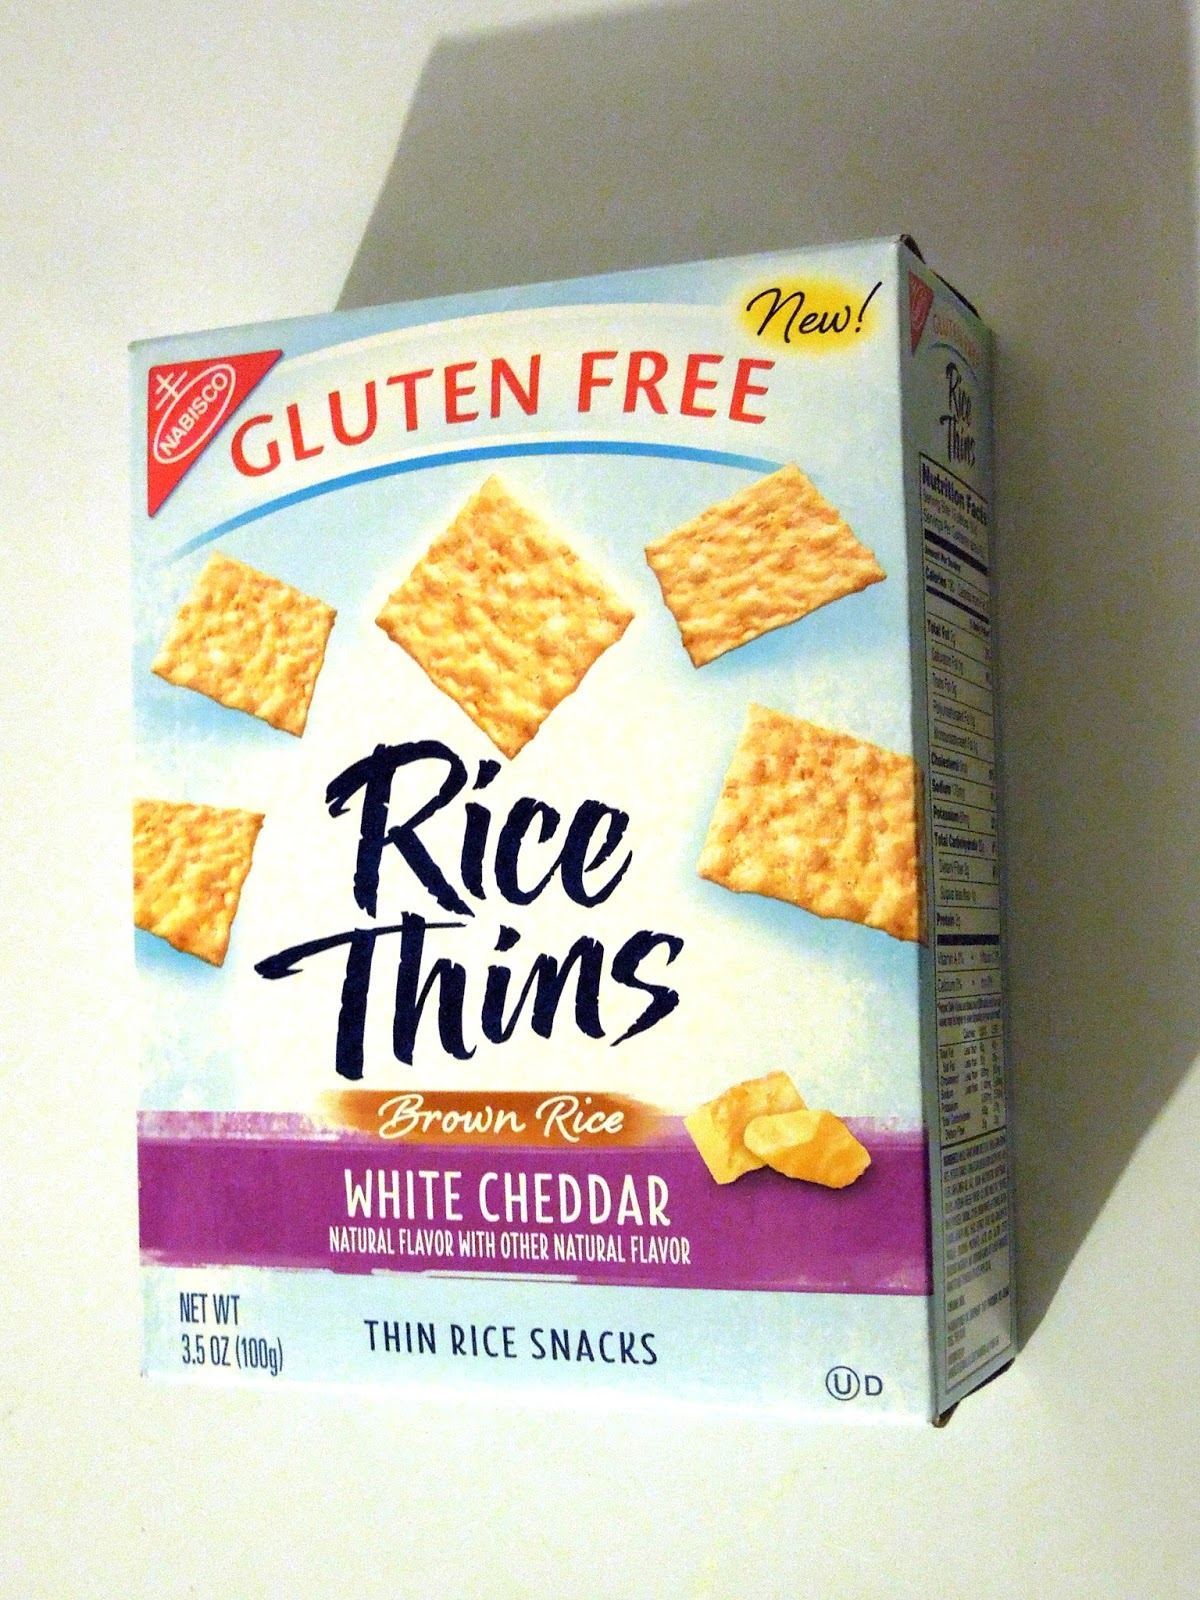 Gluten-Free Food Review 2